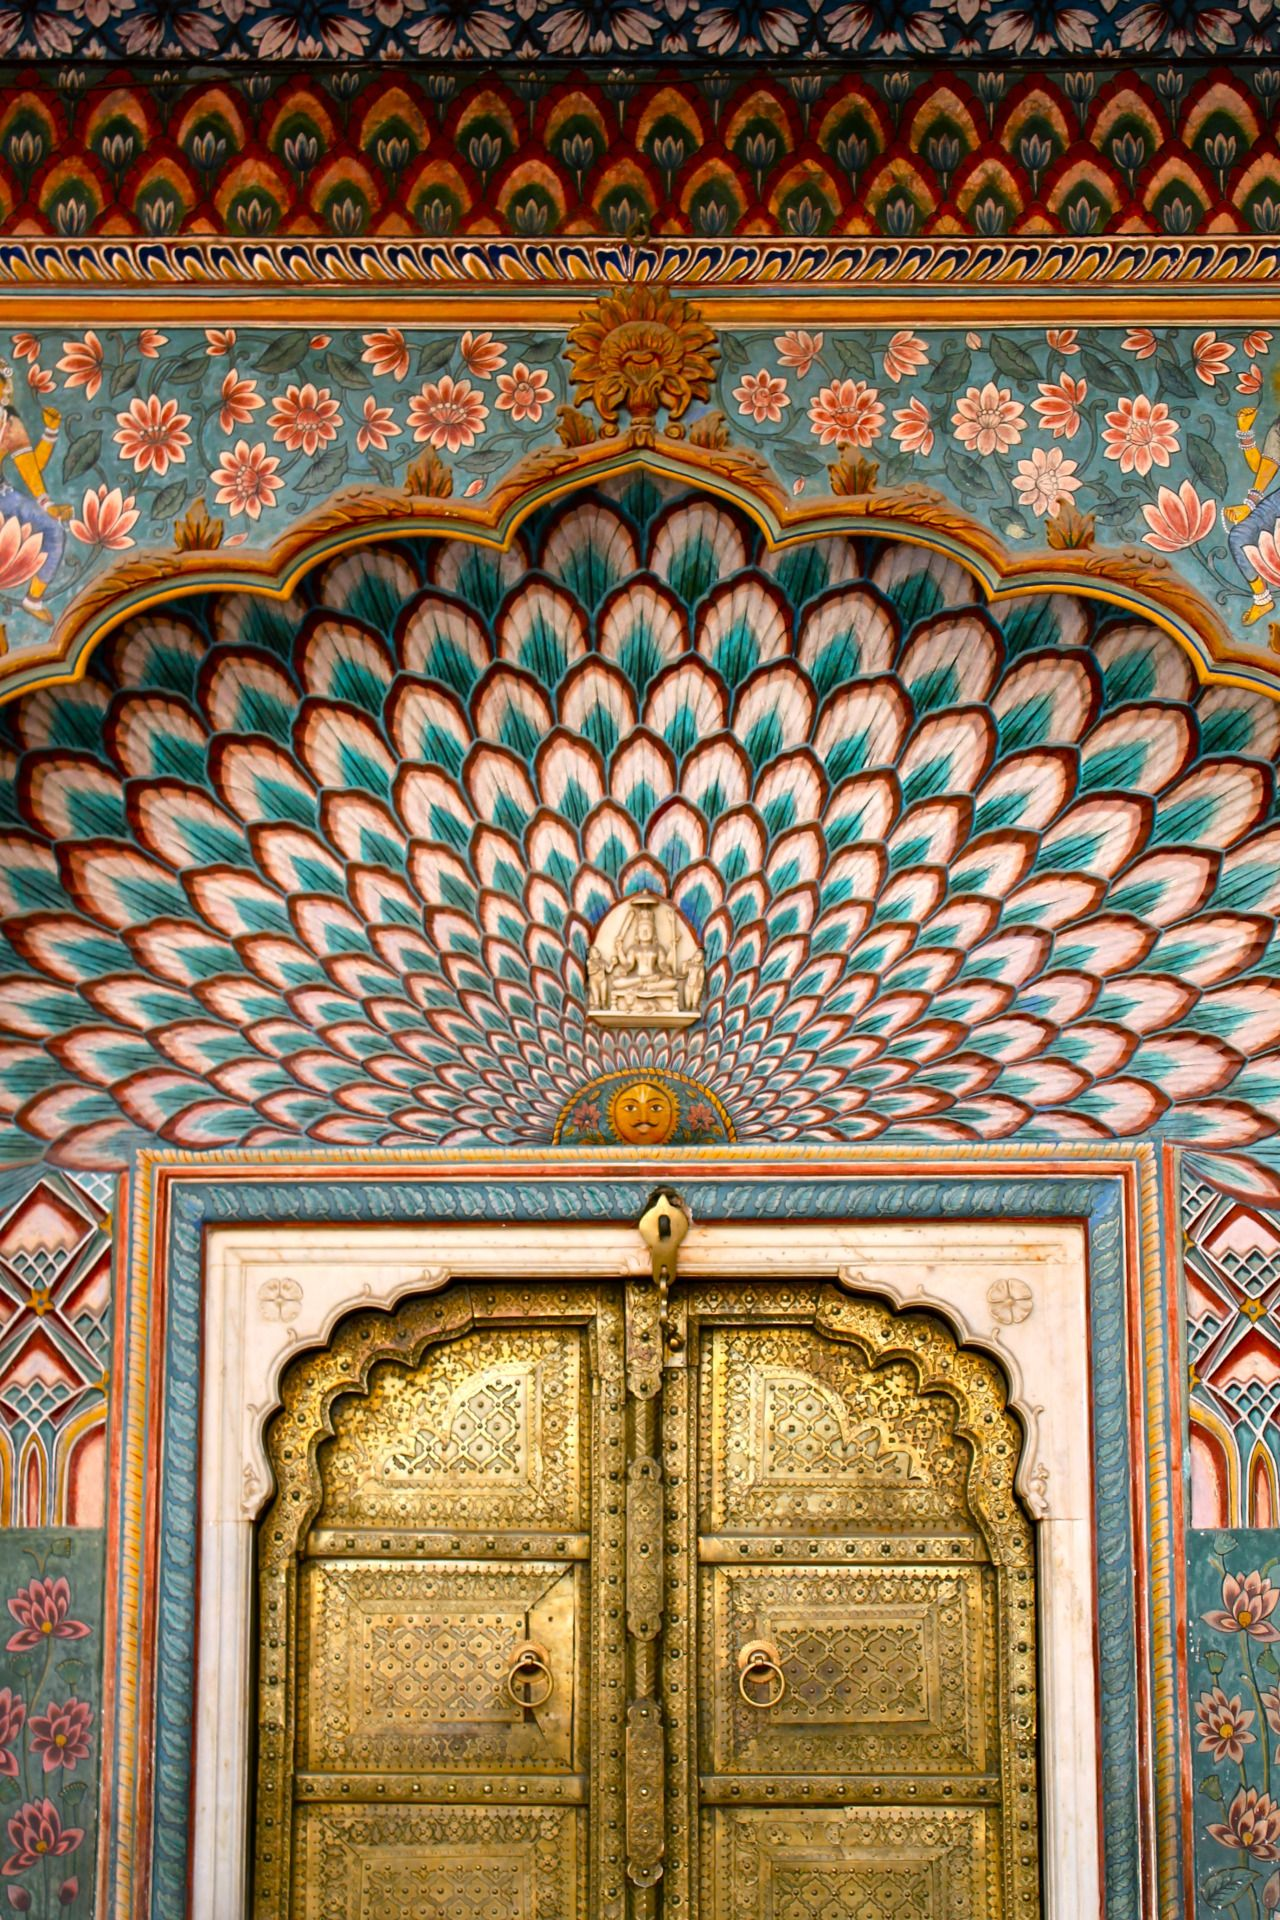 Lizzy Jones Golden Door City Palace Jaipur Rajasthan India 23 2 15 India Architecture City Palace Jaipur Indian Architecture